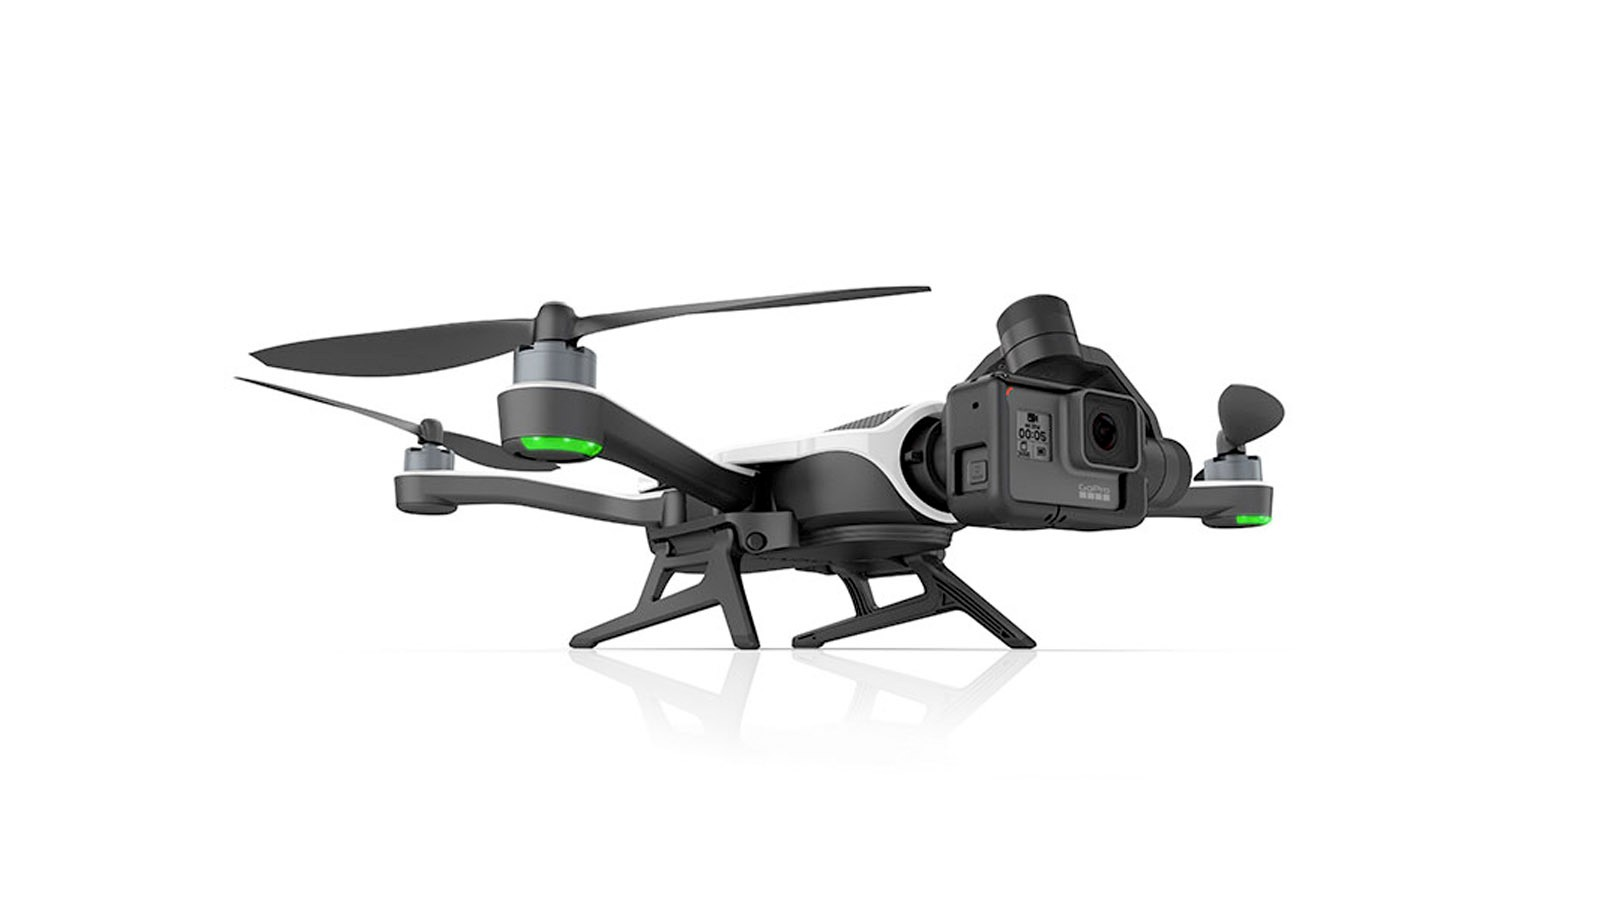 The Karma Drone has not been the success that GoPro had hoped